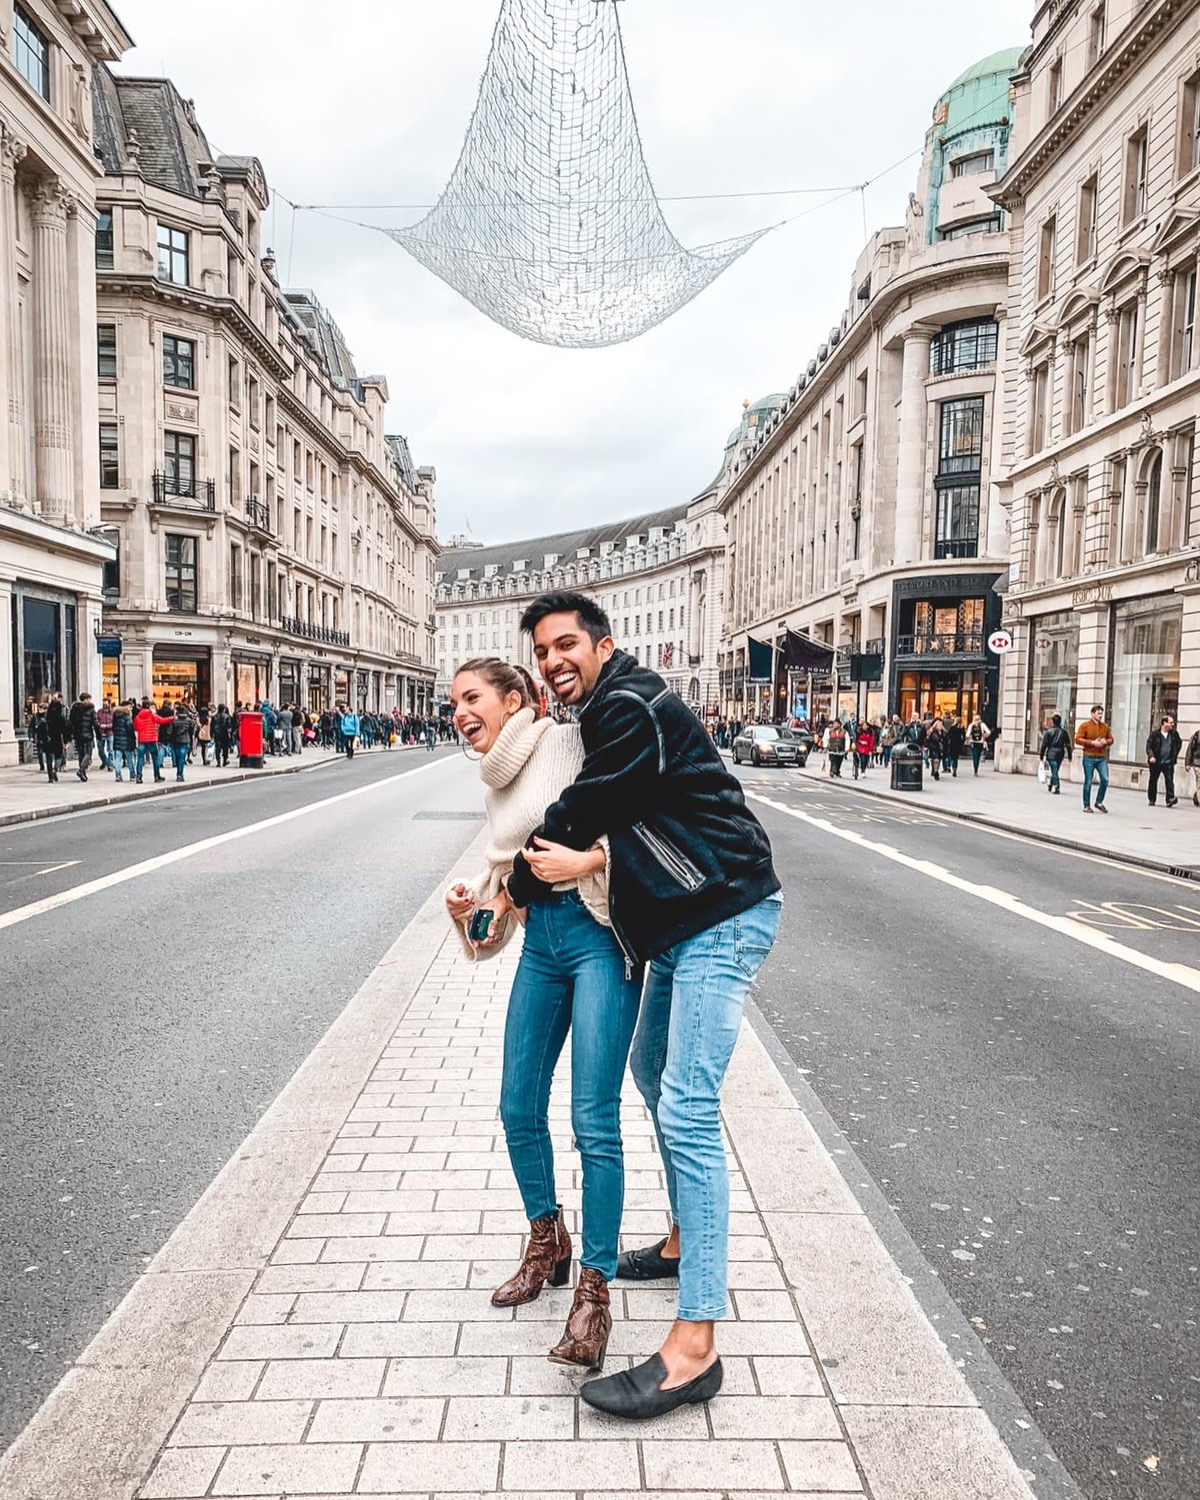 The 2019 Edit: Progress - Aftab and Alice laughing in Regent's Street, London.